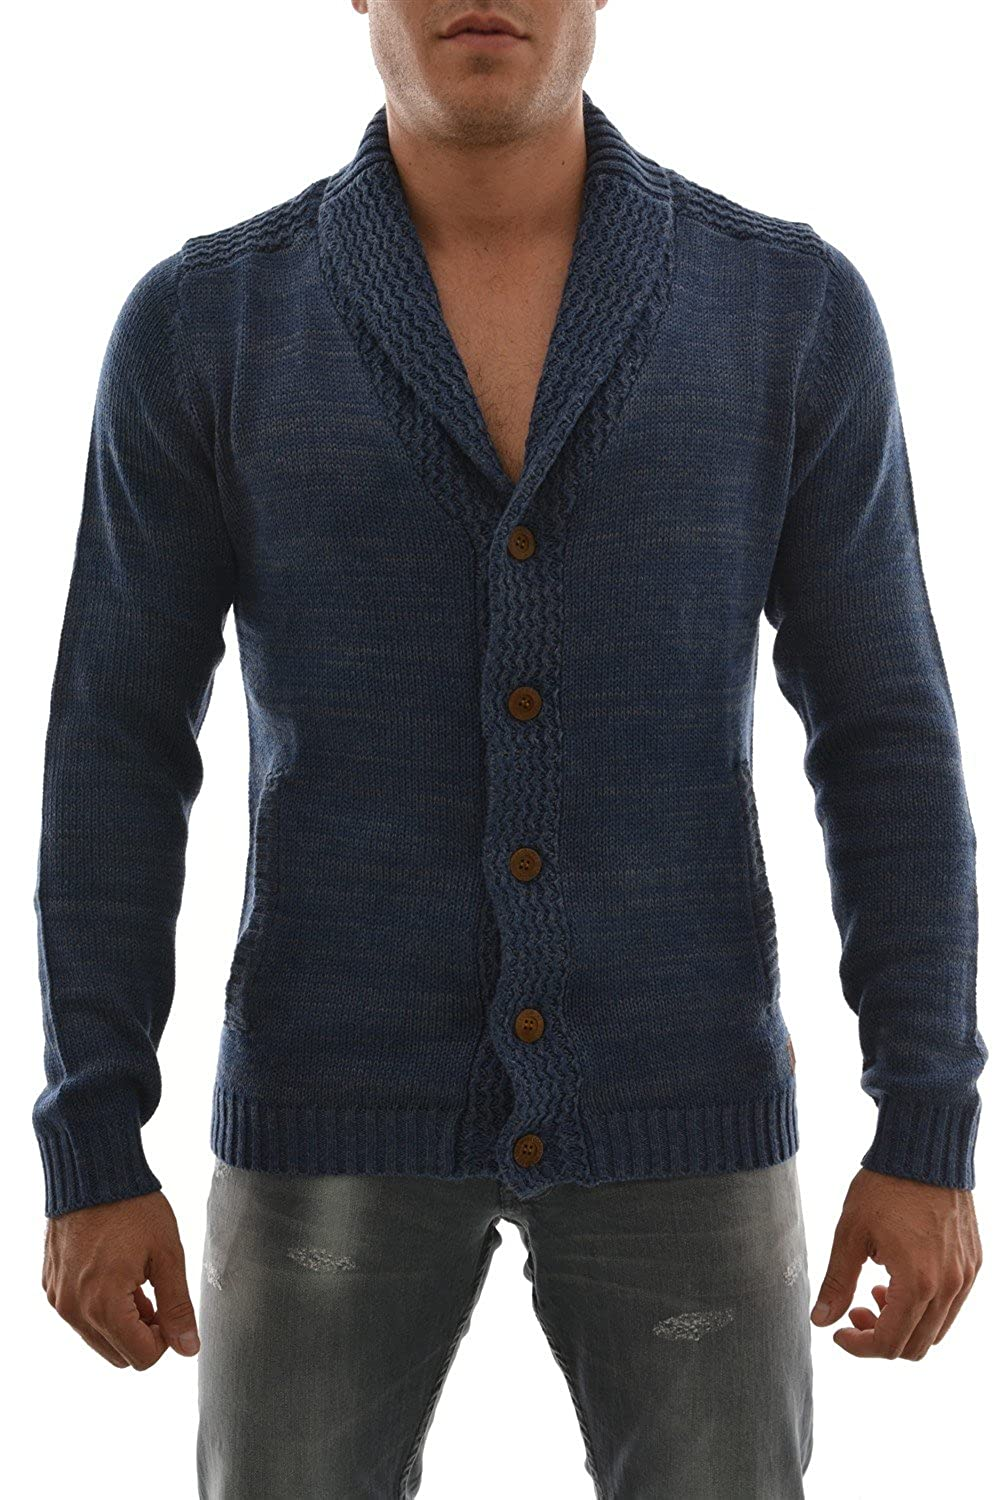 Lee Cooper Men's Cardigan